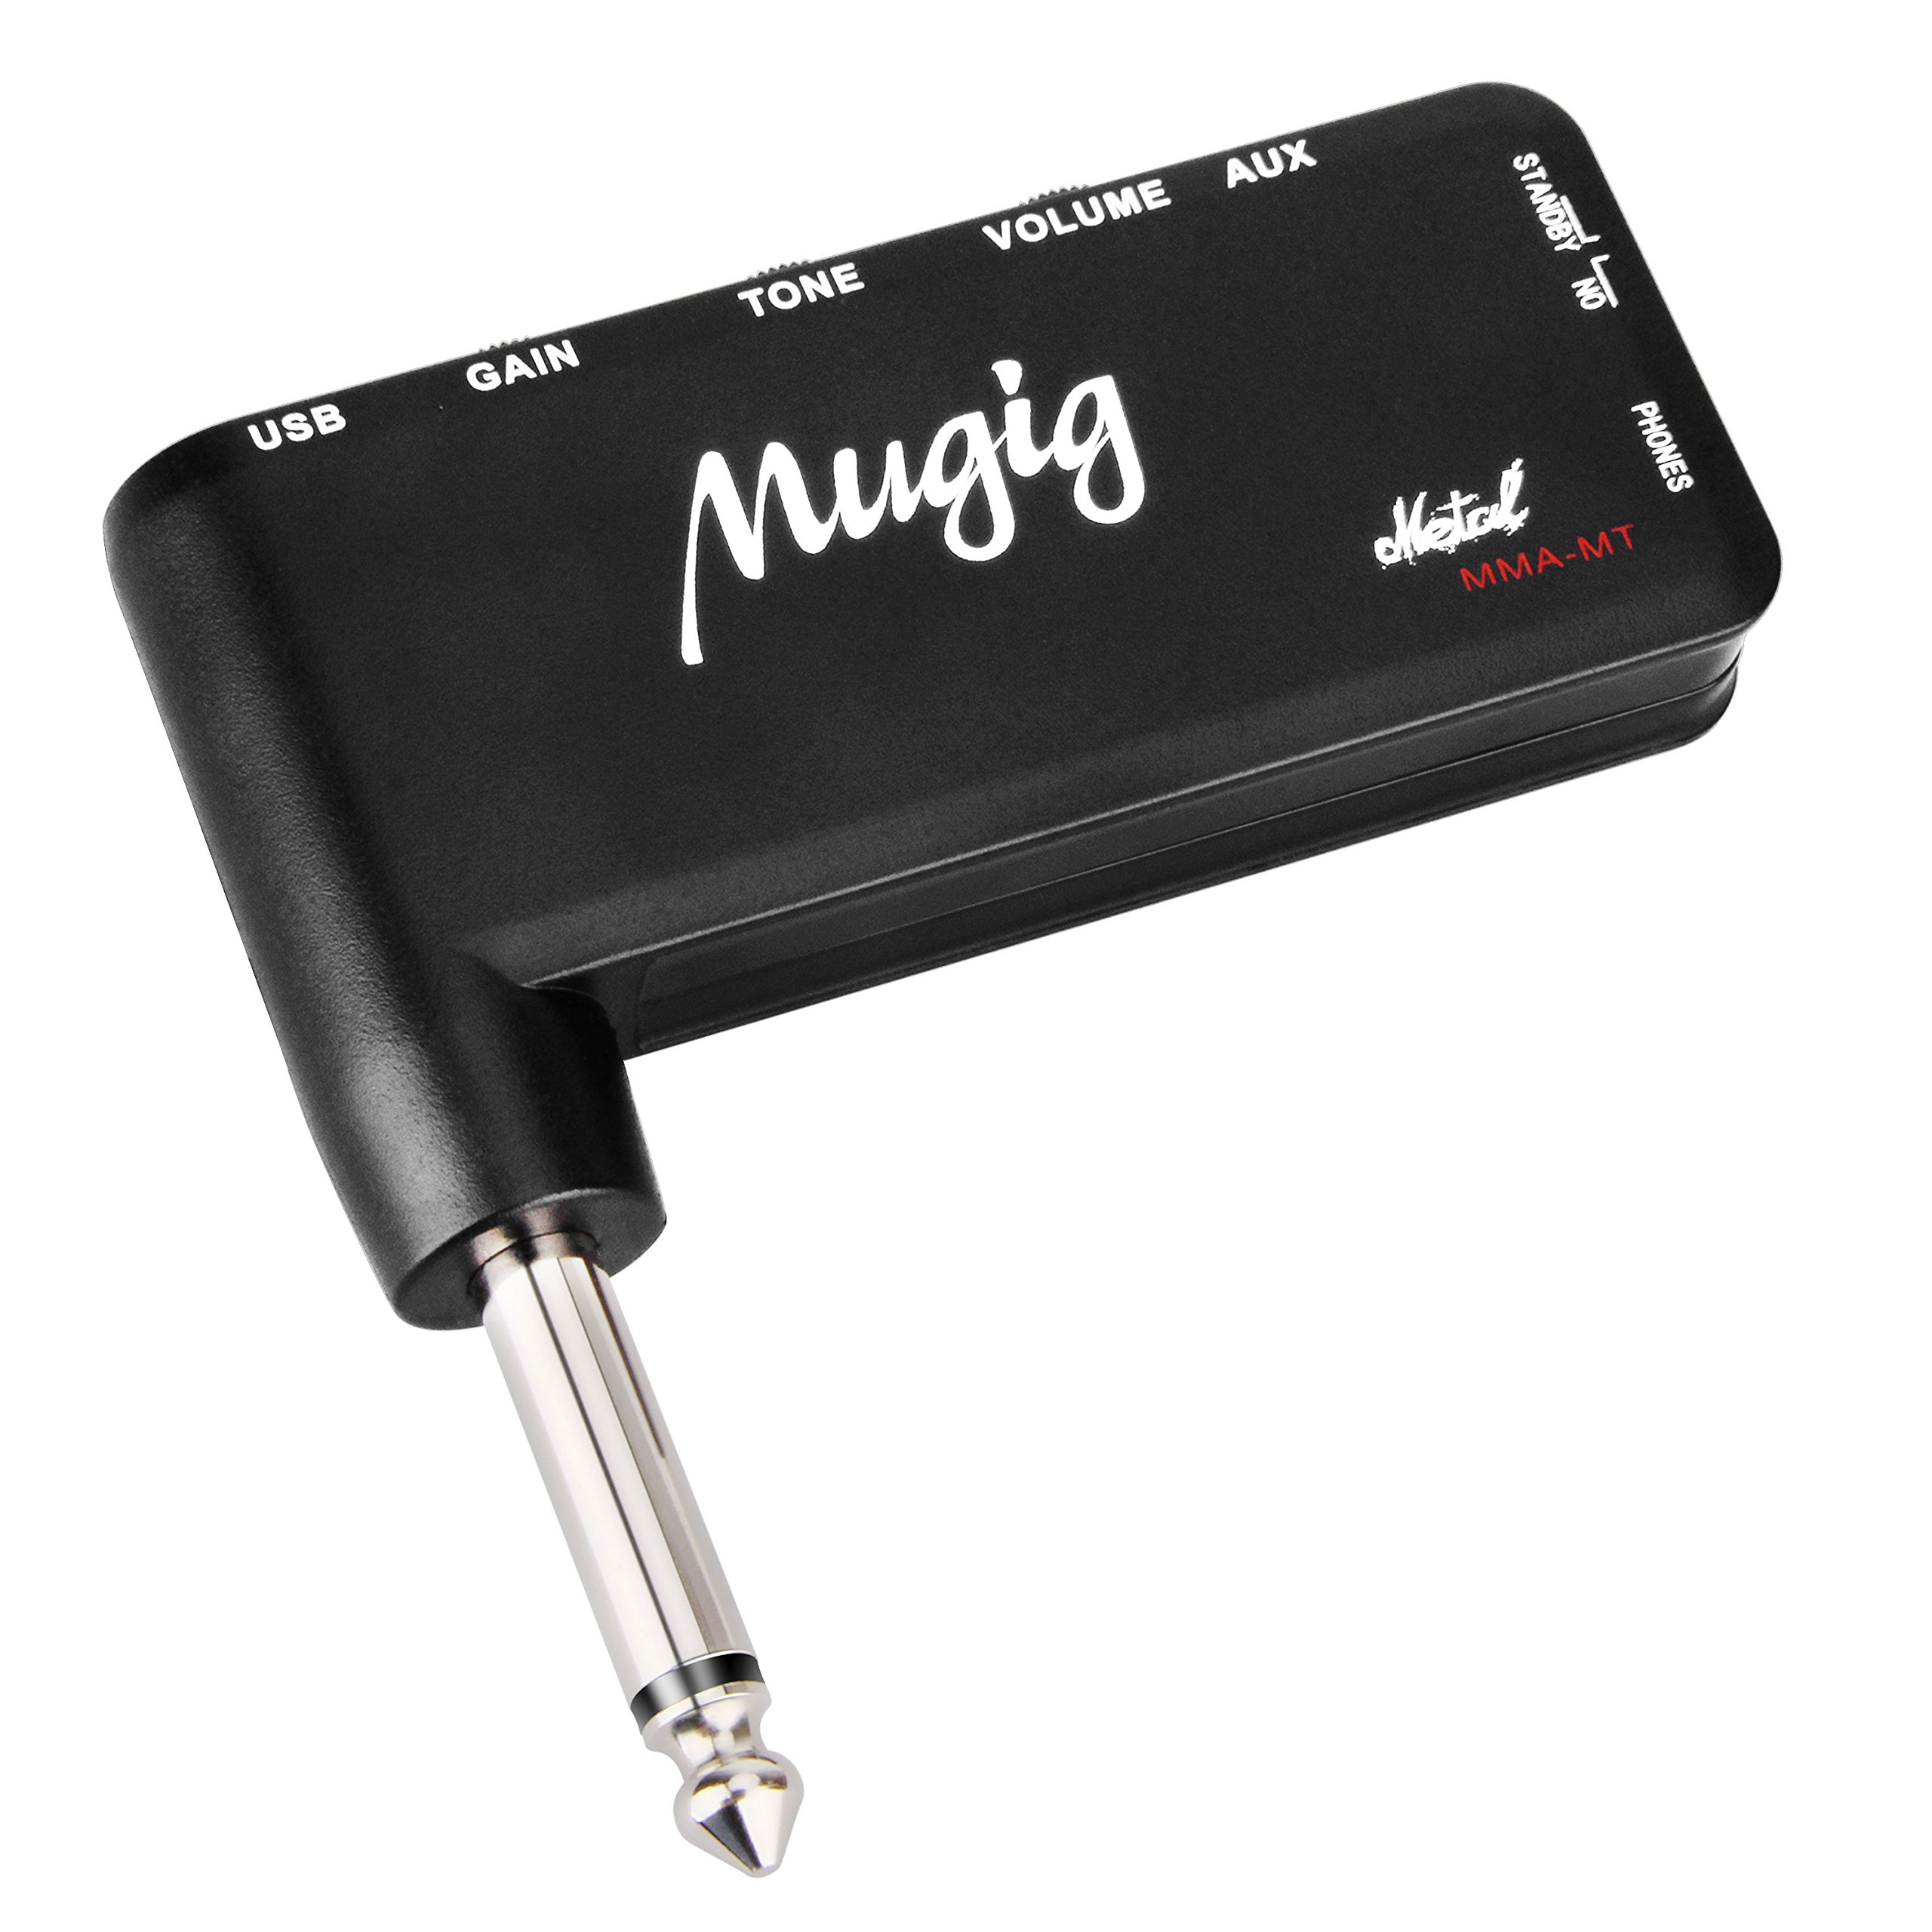 Mugig Guitar Amplifier, Guitar Headphone, Mini Guitar Amp for Classic Rock with Heavy Metal Tone, Rechargeable Battery with 1/4'' (3.5mm) Input (Also used for bass guitar)